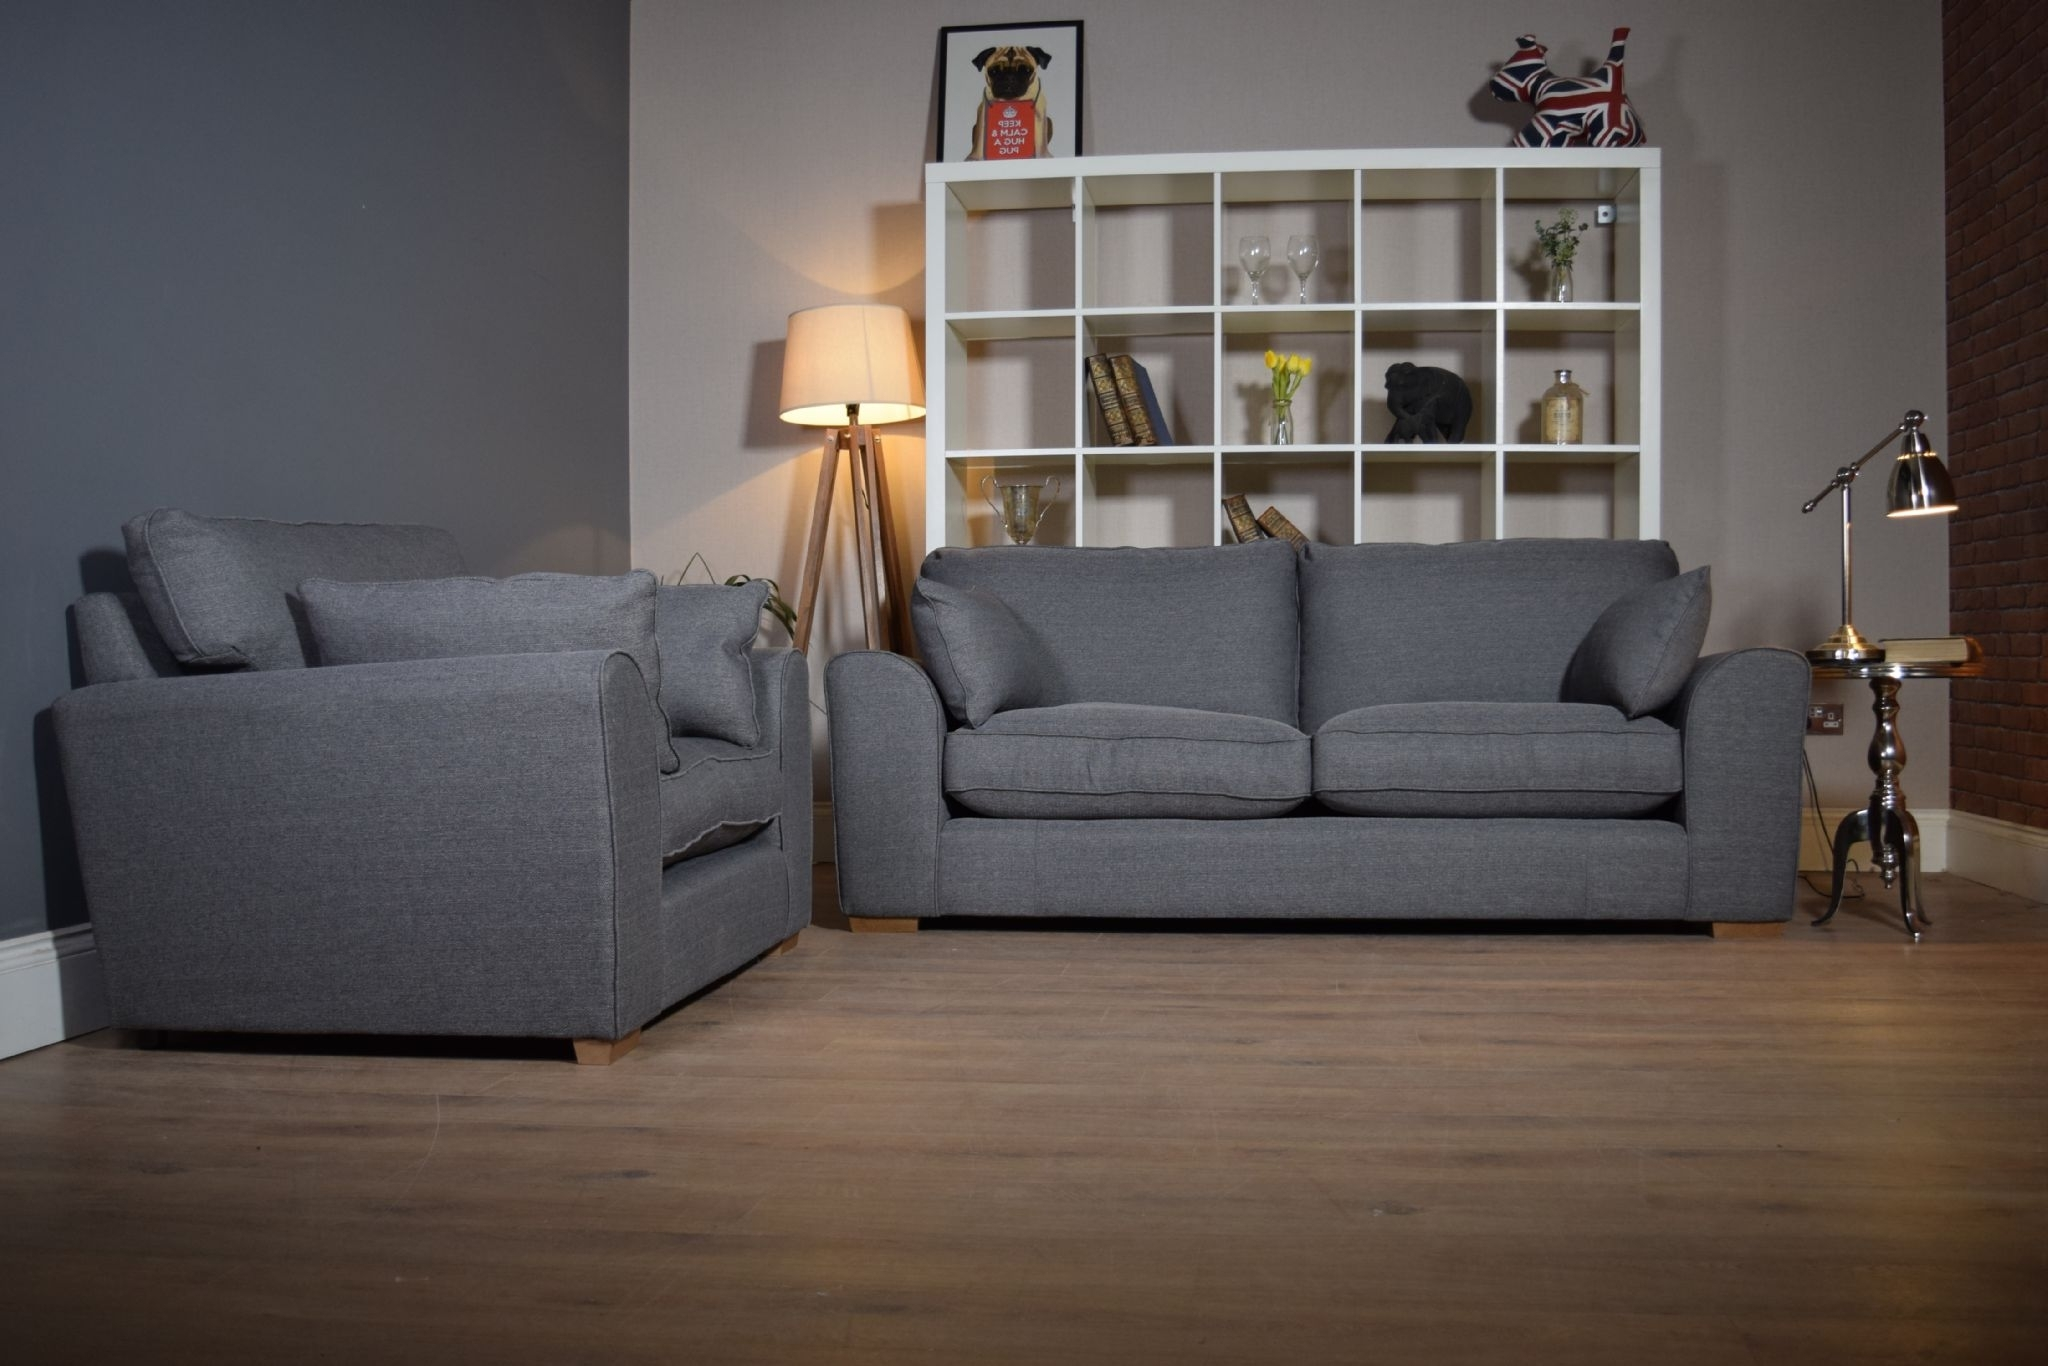 Set Ashdown 3 Seater Sofa & Cuddle Chair Set – Grey – Out Of Stock Intended For Fashionable 3 Seater Sofas And Cuddle Chairs (View 17 of 20)